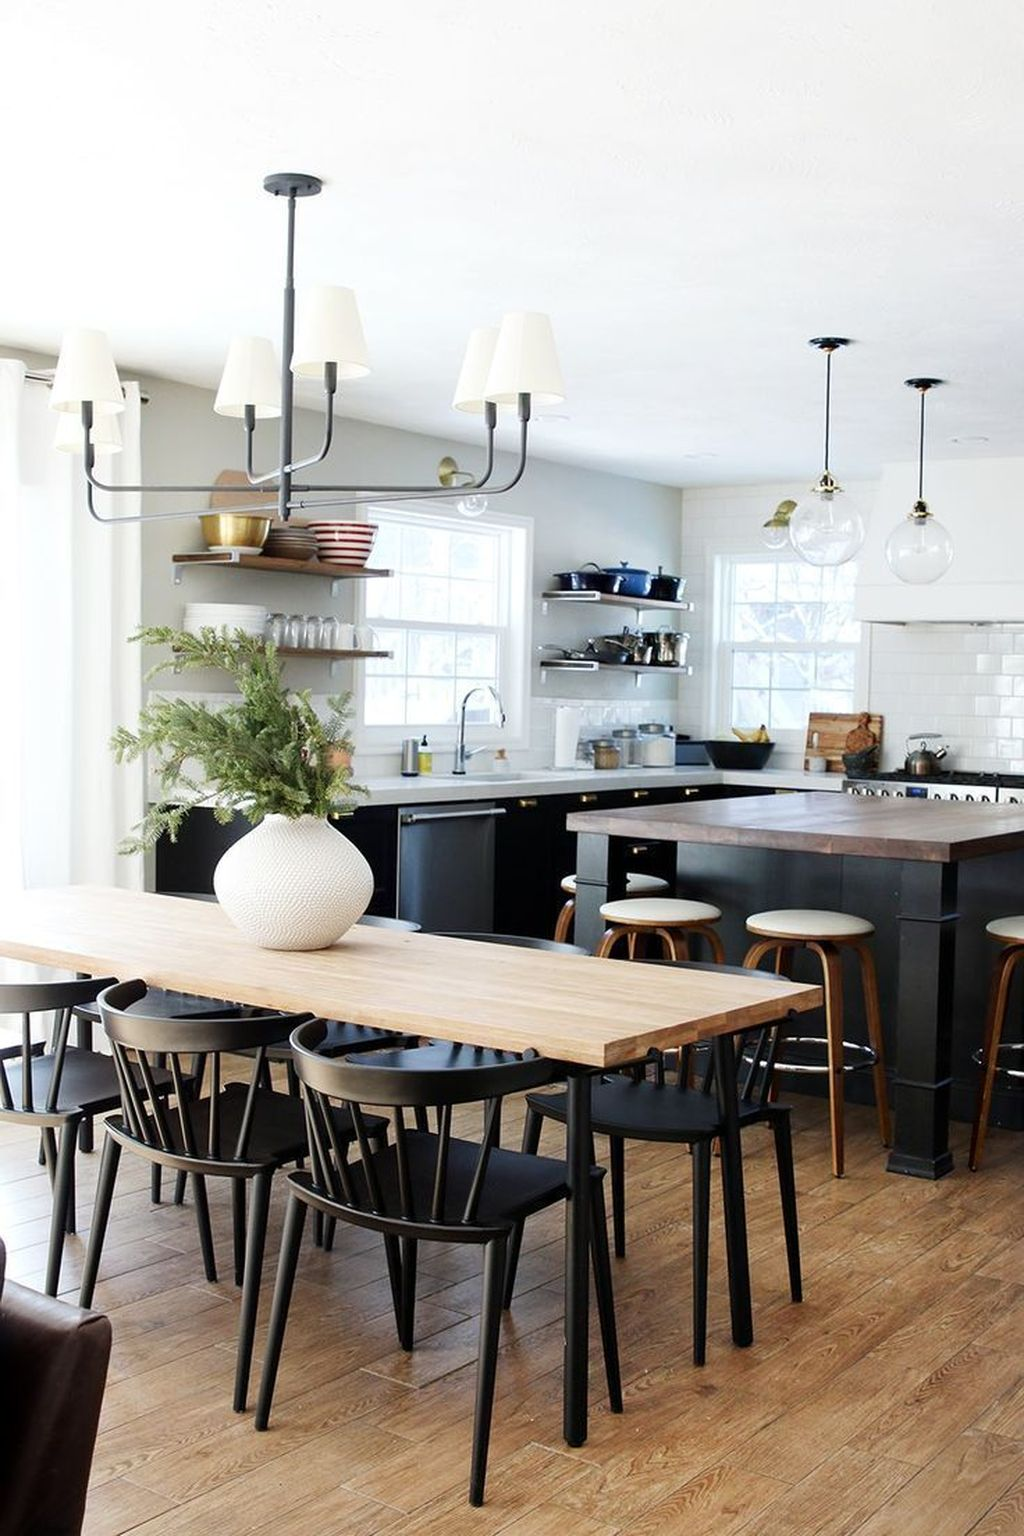 Admirable Dining Room Design Ideas You Will Love 11 1